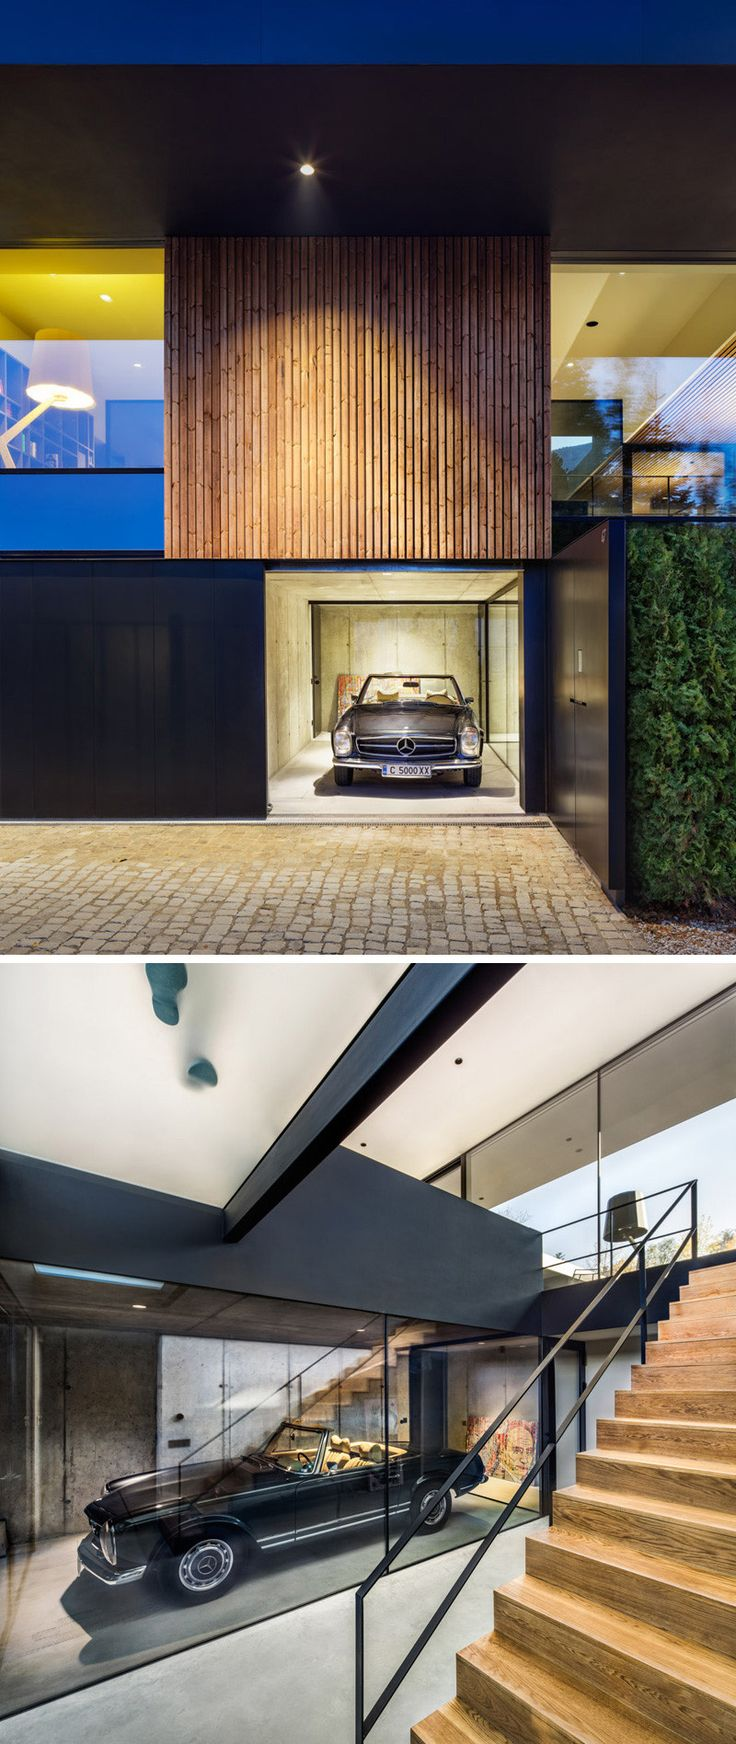 Best 25 car garage ideas on pinterest man cave ideas for Car garage interior design